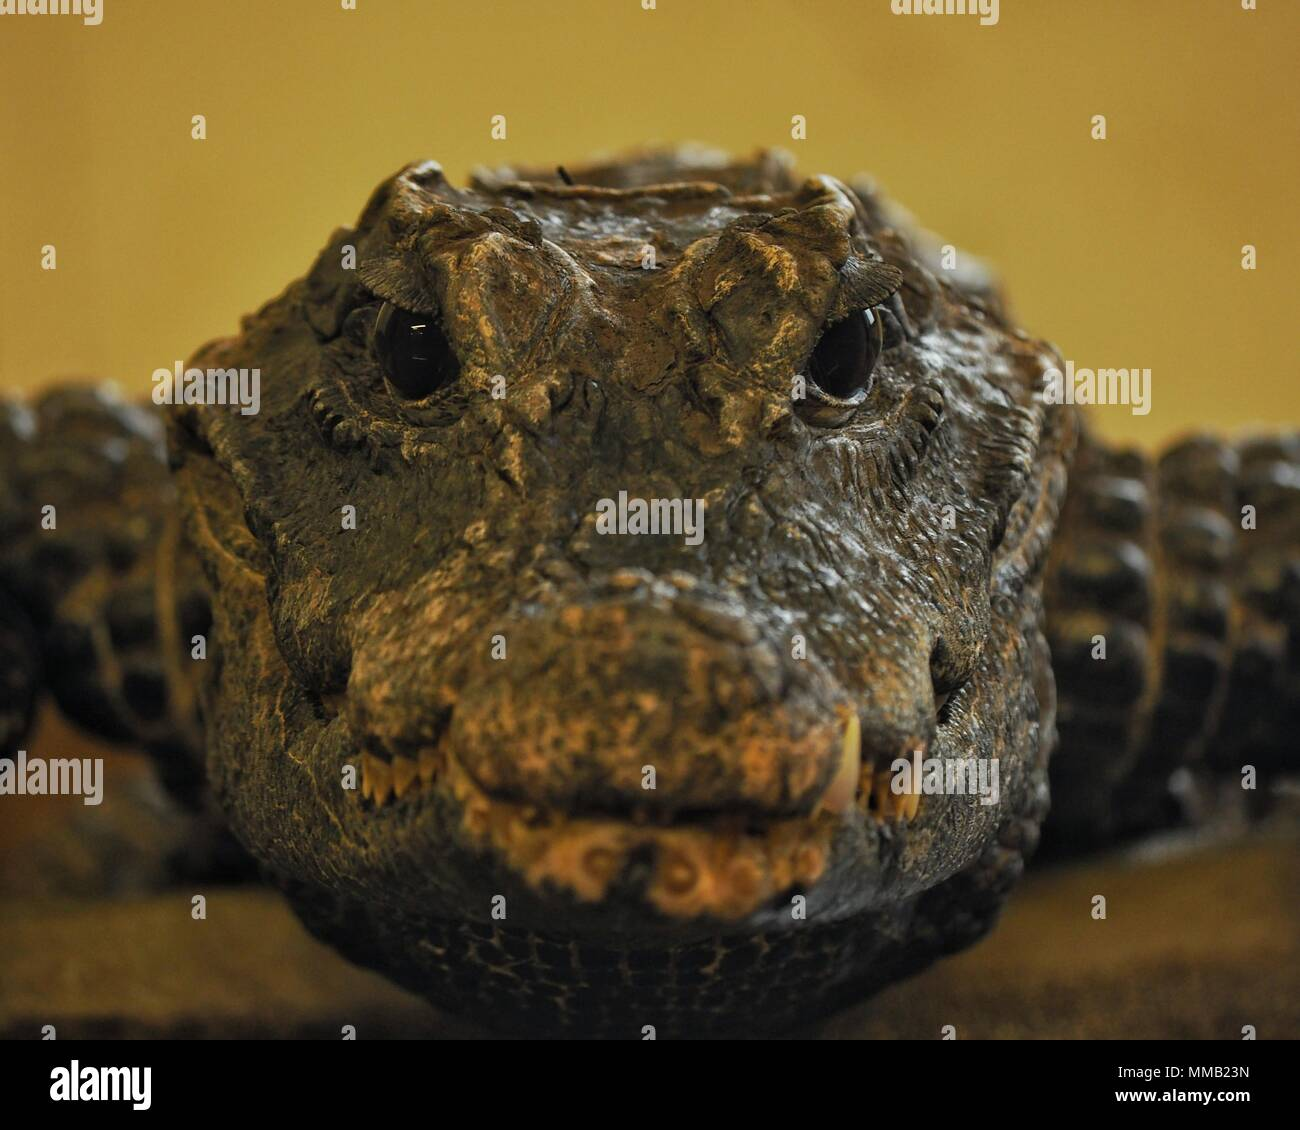 Caiman Scales Stock Photos & Caiman Scales Stock Images - Alamy